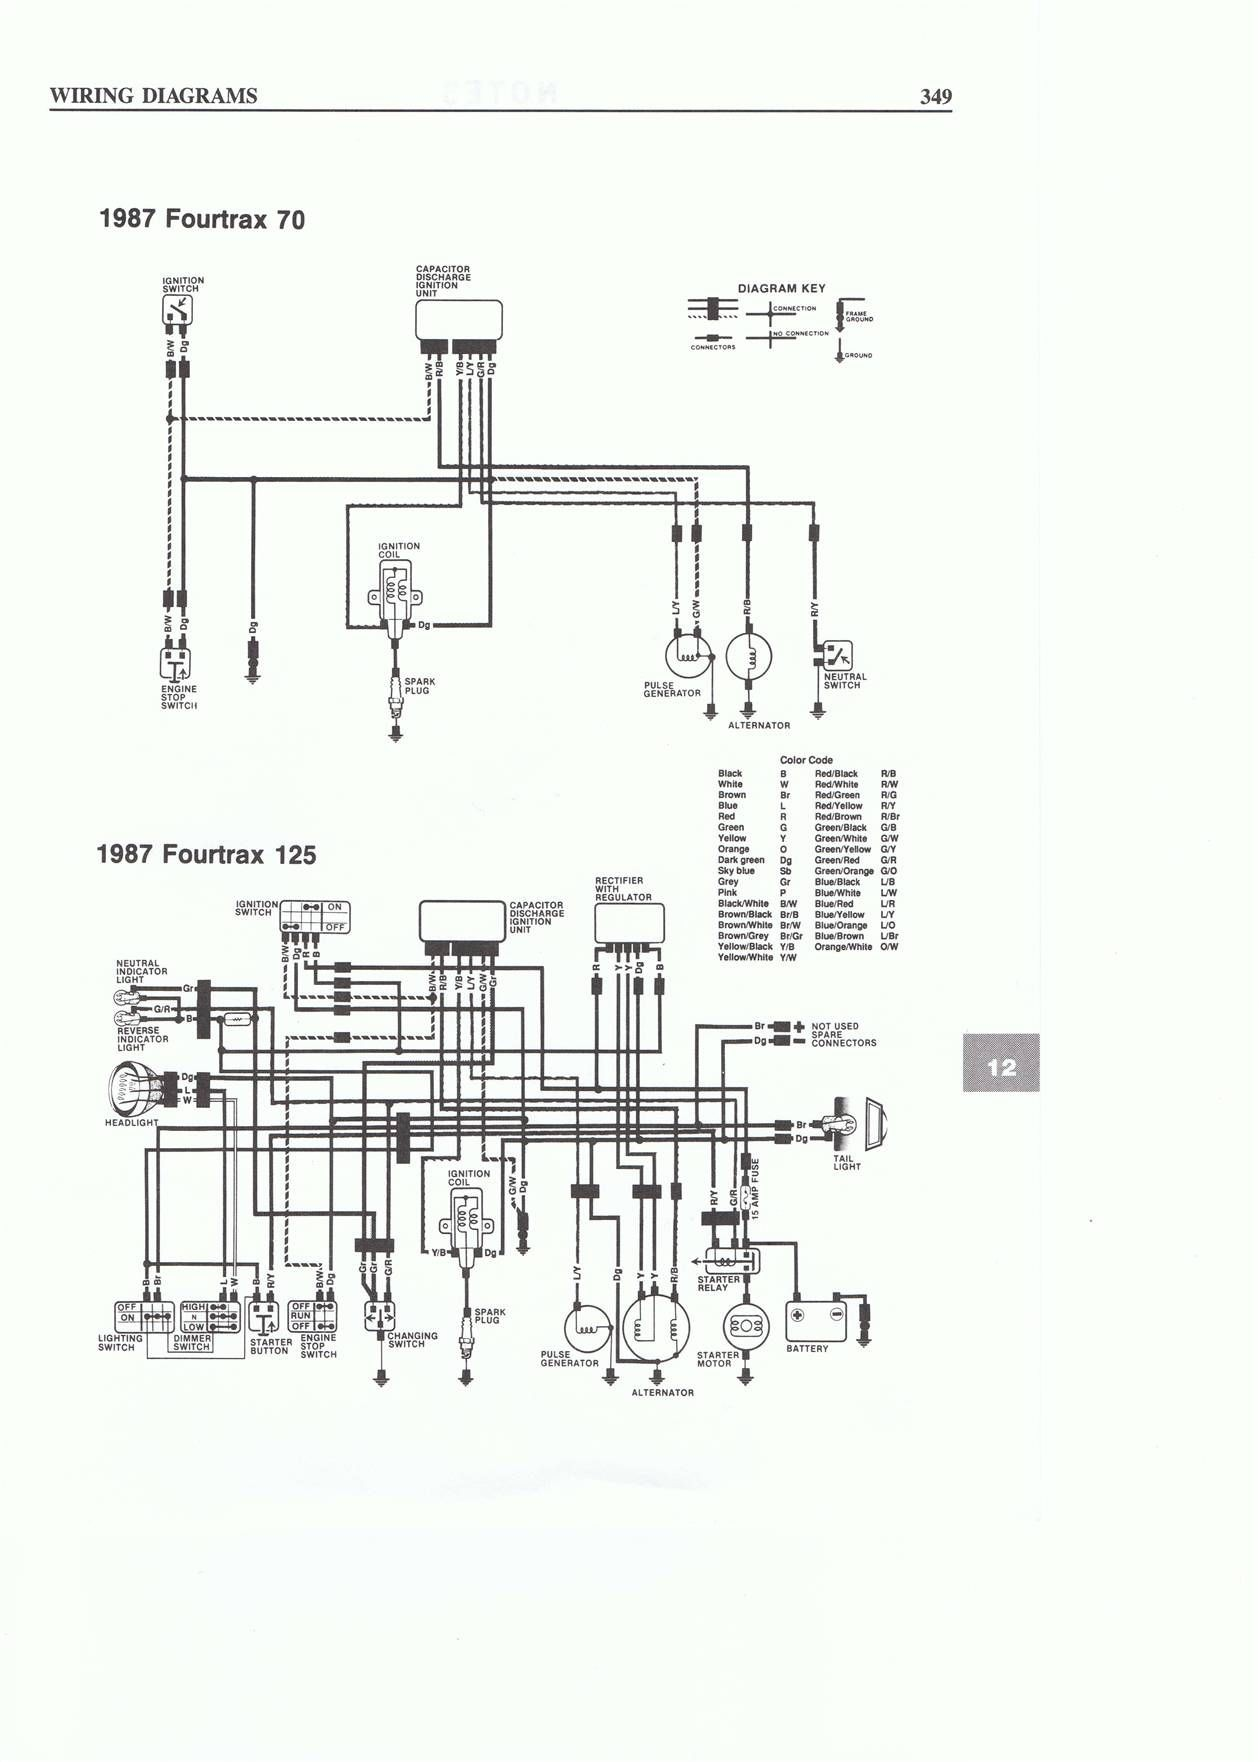 WRG-1887] 49cc Scooter Engine Wiring Diagram